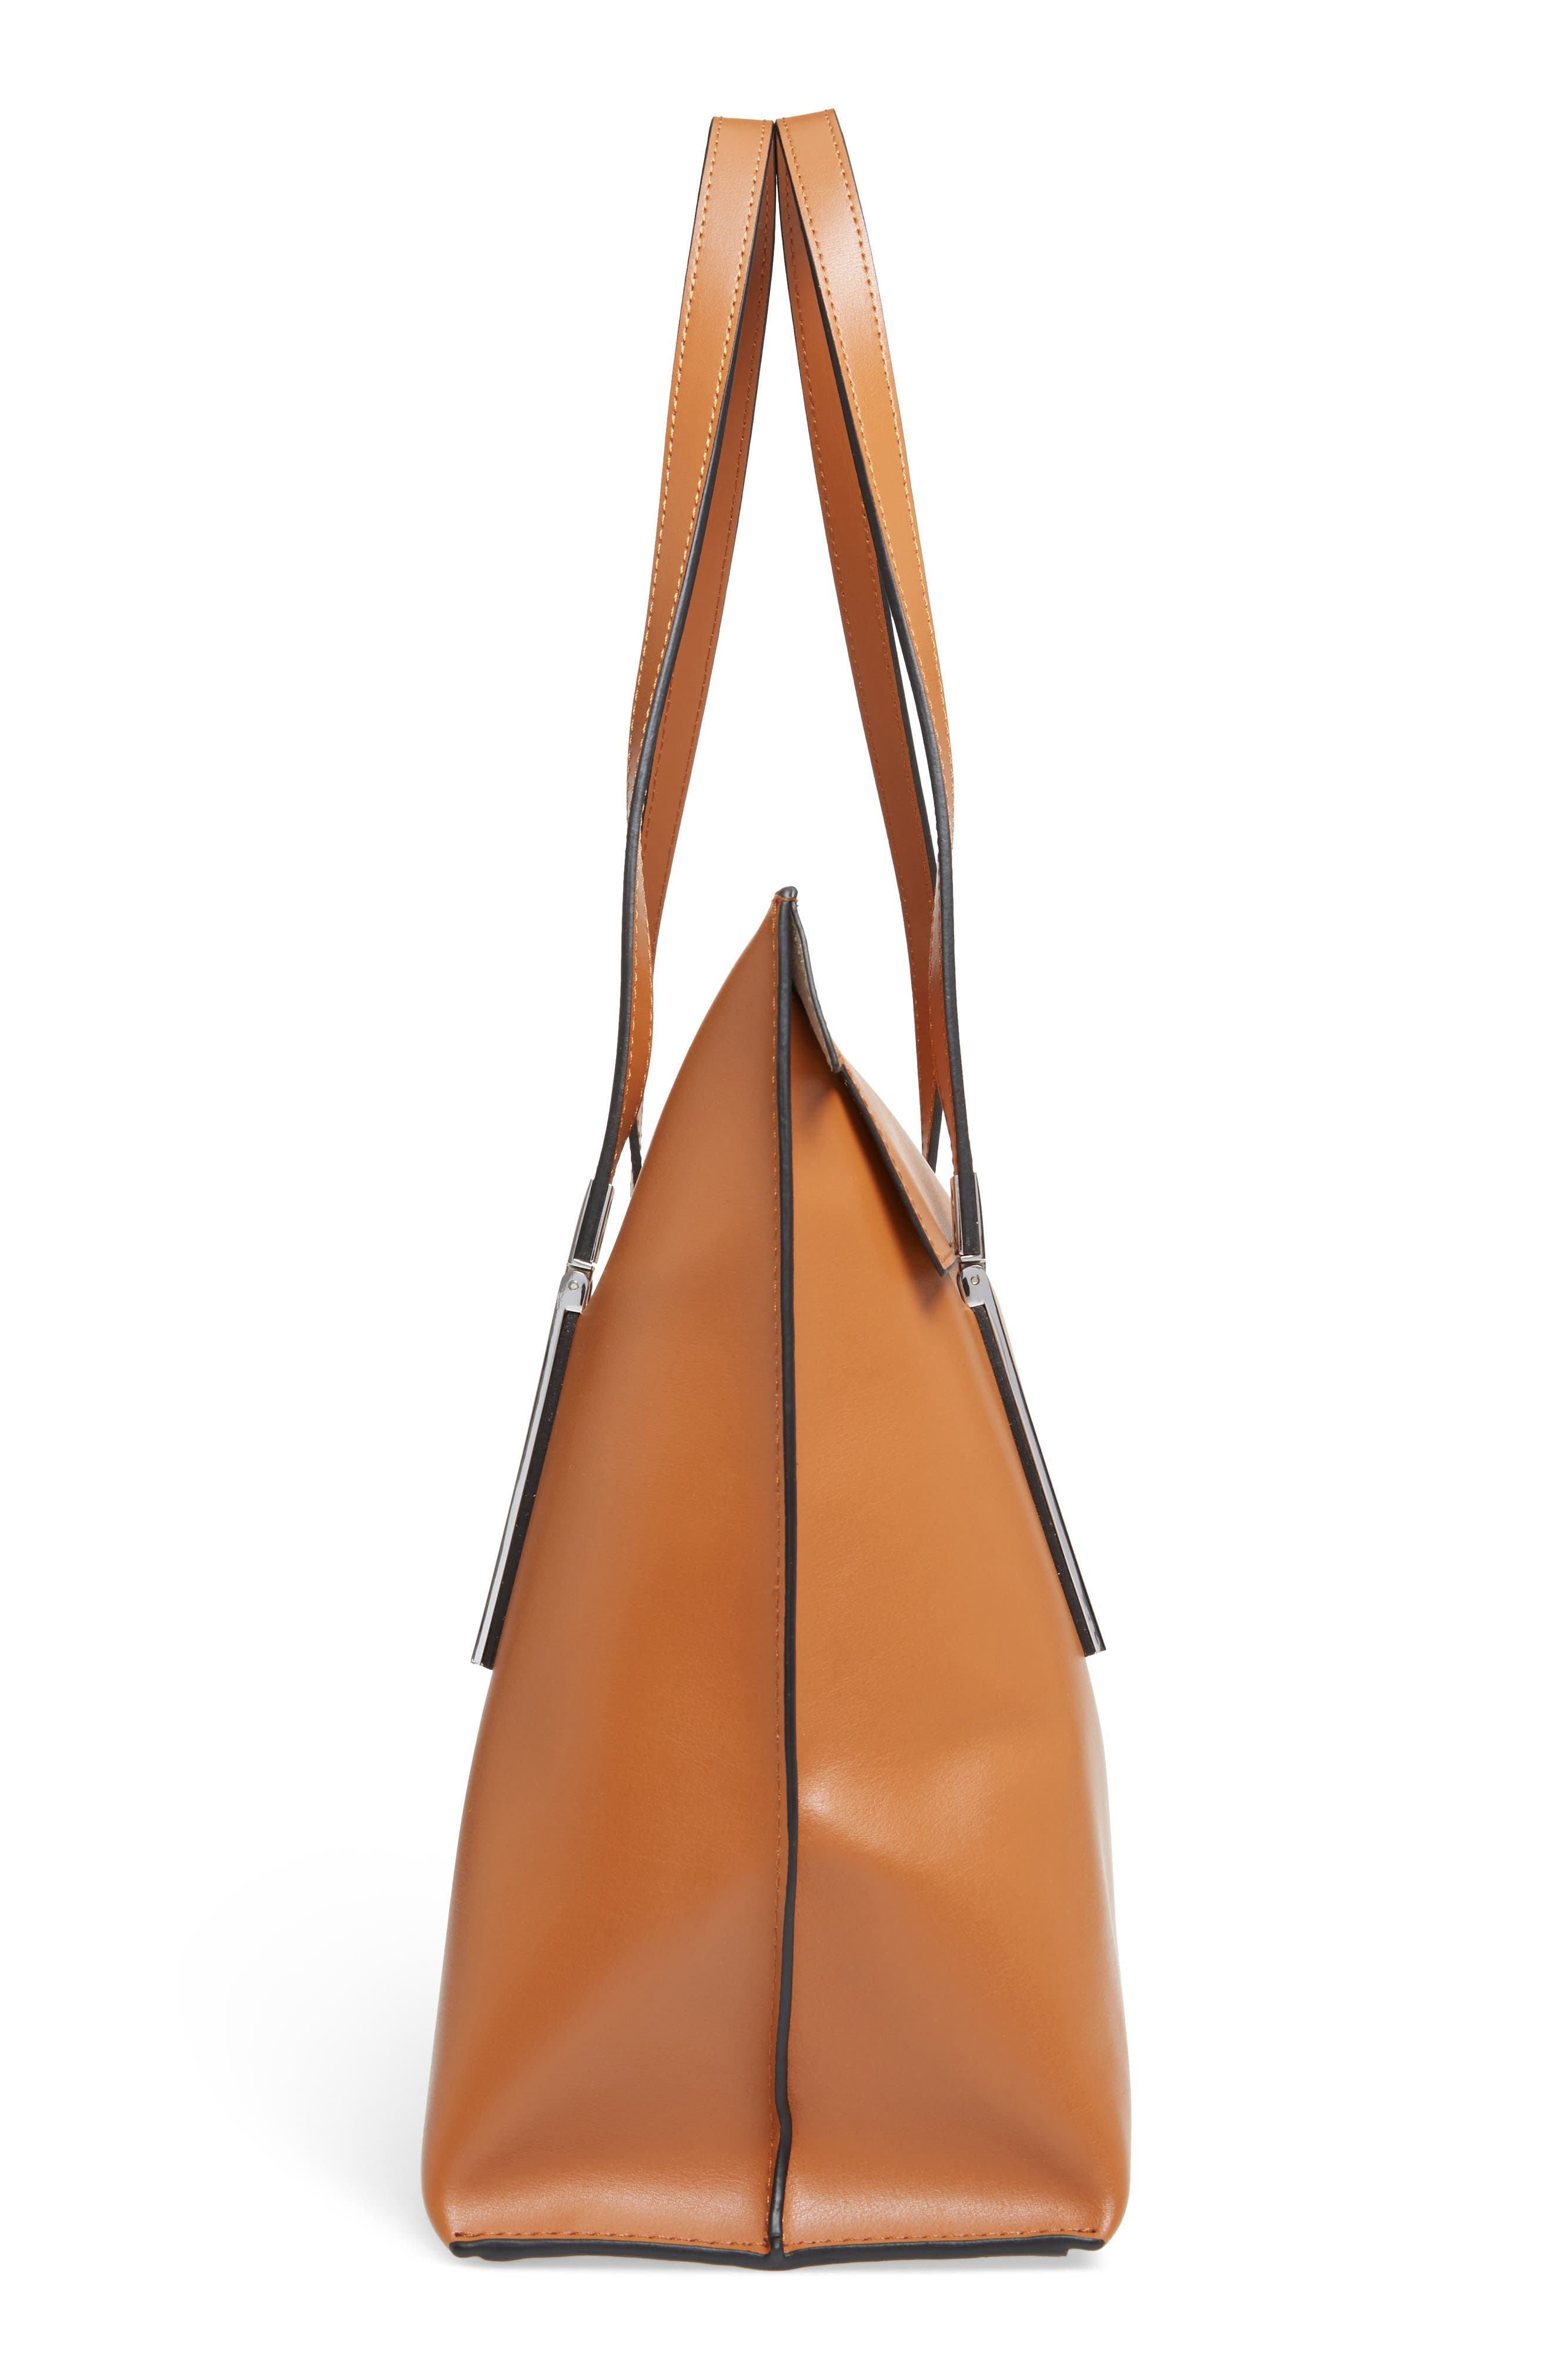 LODIS Silicon Valley - Lorrain RFID Leather Satchel,                             Alternate thumbnail 5, color,                             Toffee/ Taupe